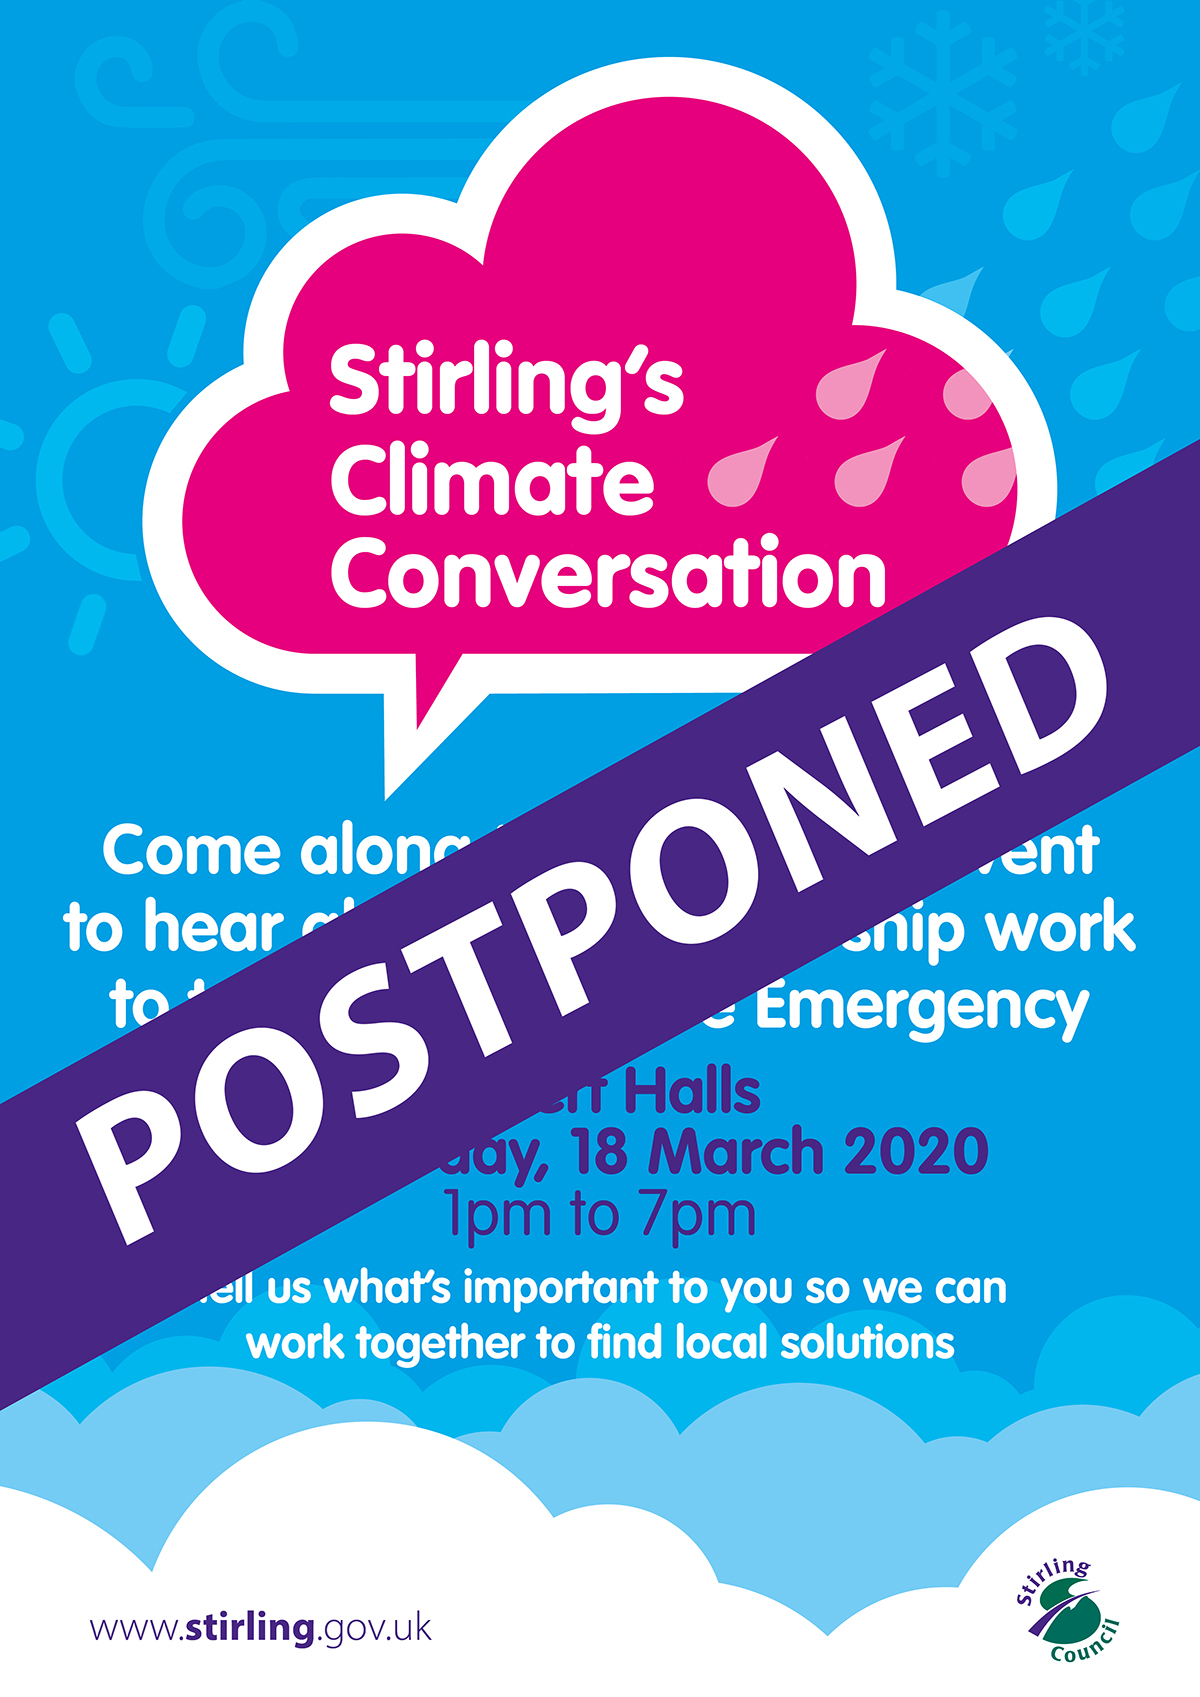 The Council's Climate Conversation event has been postponed